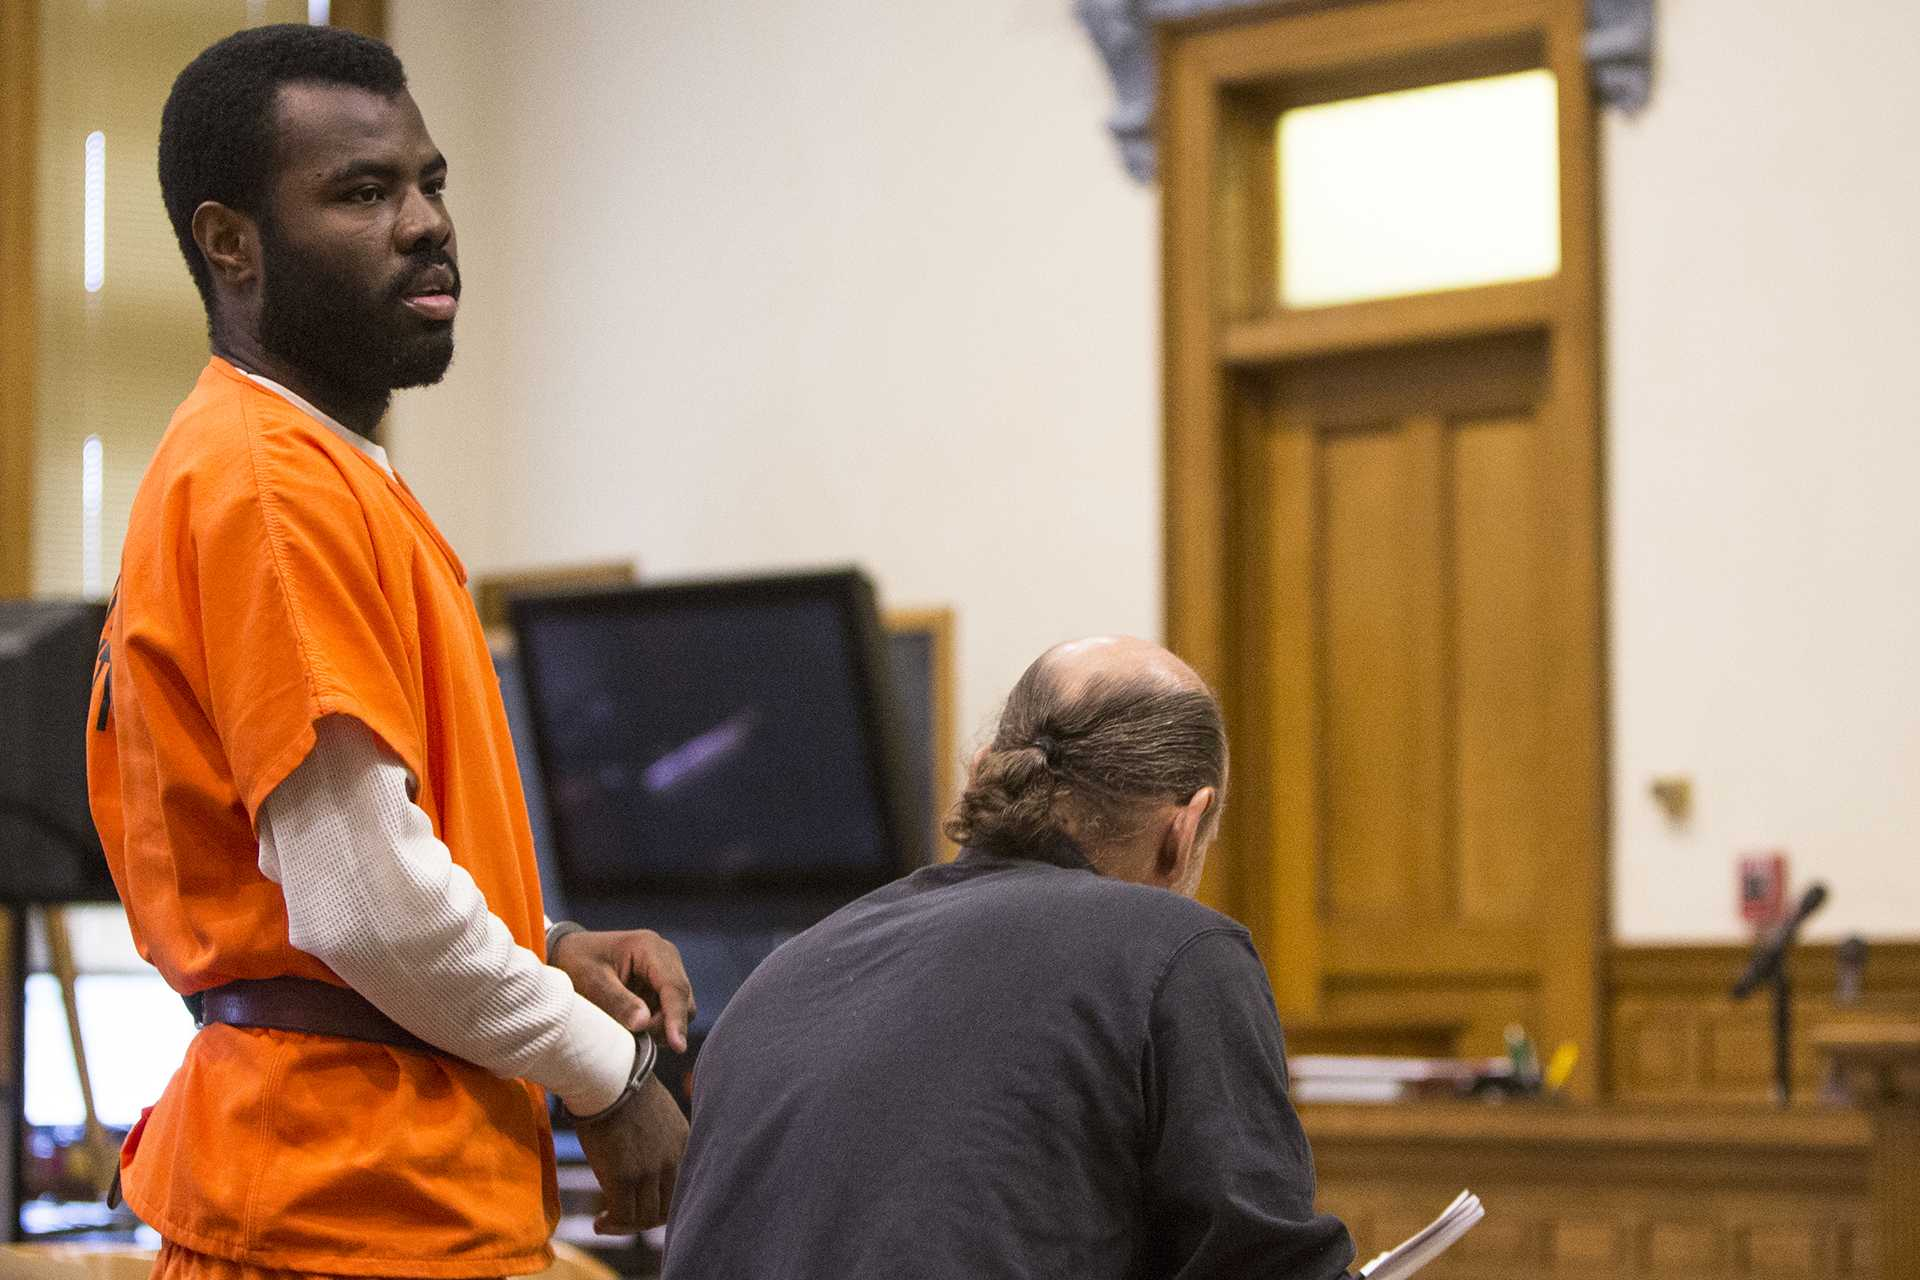 "Lamar Wilson of Iowa City leaves the court room during a case management hearing for State of Iowa v. Lamar Wilson in the Johnson County courthouse on Friday, Oct. 27, 2017. Wilson's lawyers asked the judge to dismiss charges against him using Iowa's ""stand your ground"" law. (Joseph Cress/The Daily Iowan)"